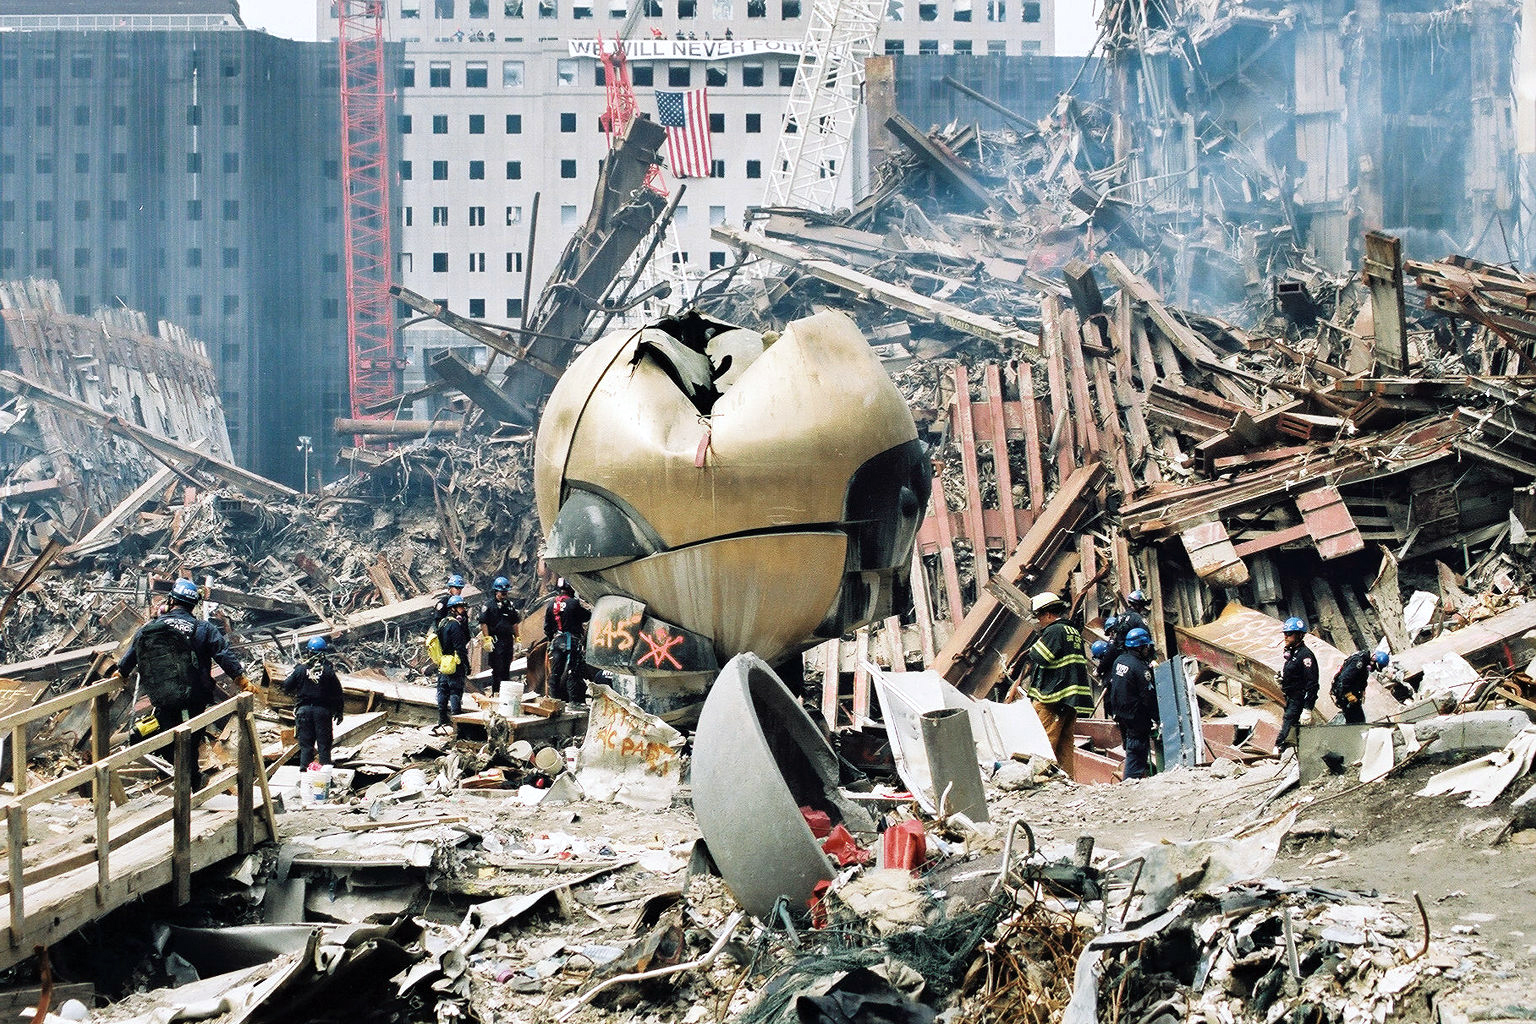 New York, NY, September 27, 2001 -- Rescue crews work to clear debris from the site of the World Trade Center. Photo by Bri Rodriguez/ FEMA News Photo